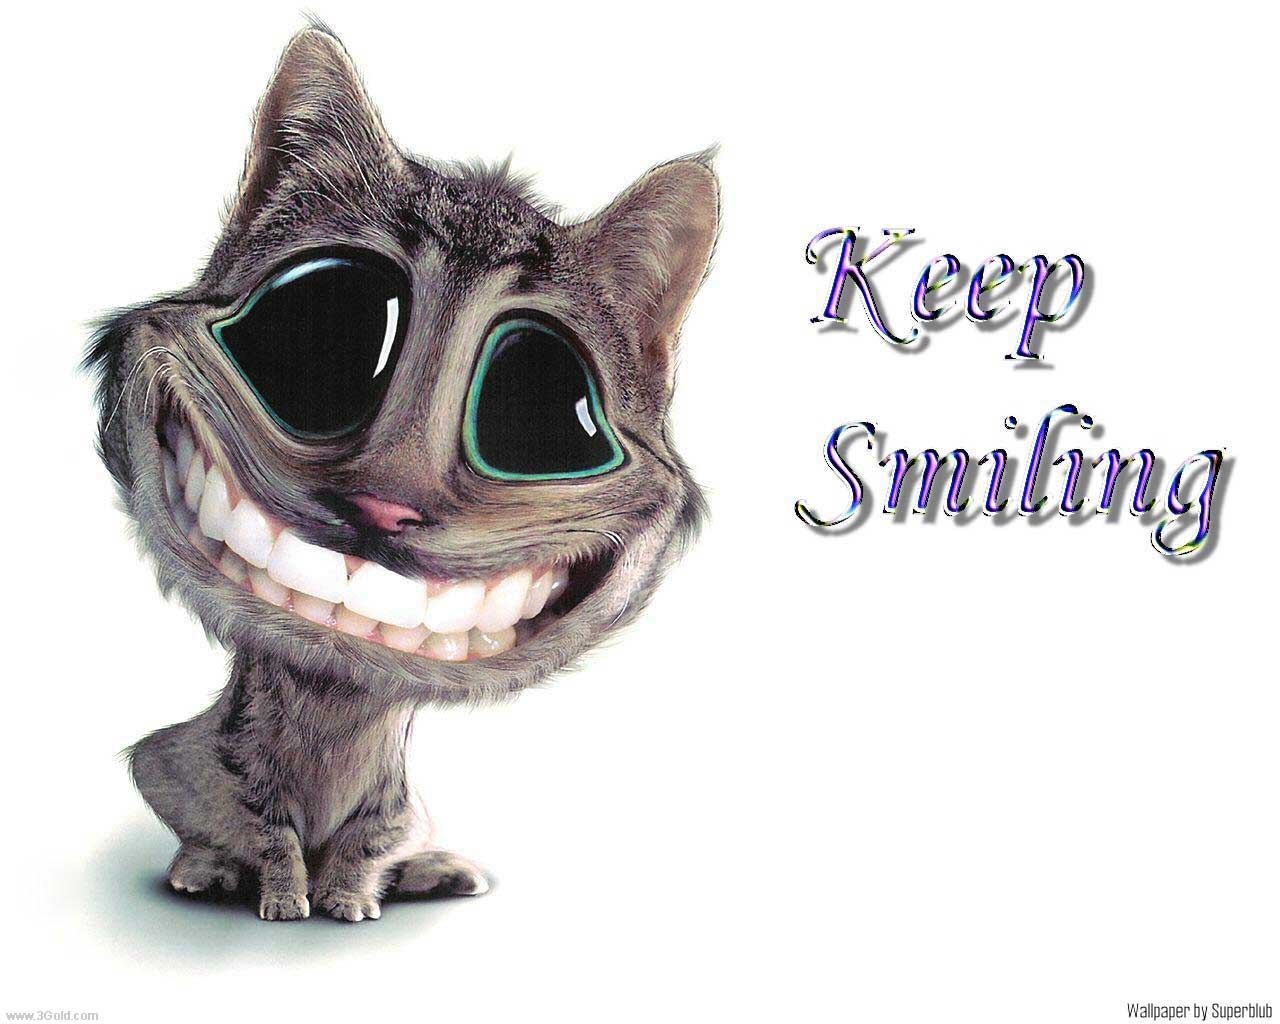 Funny pictures funny 3d pictures funny desktop wallpapers keep smiling